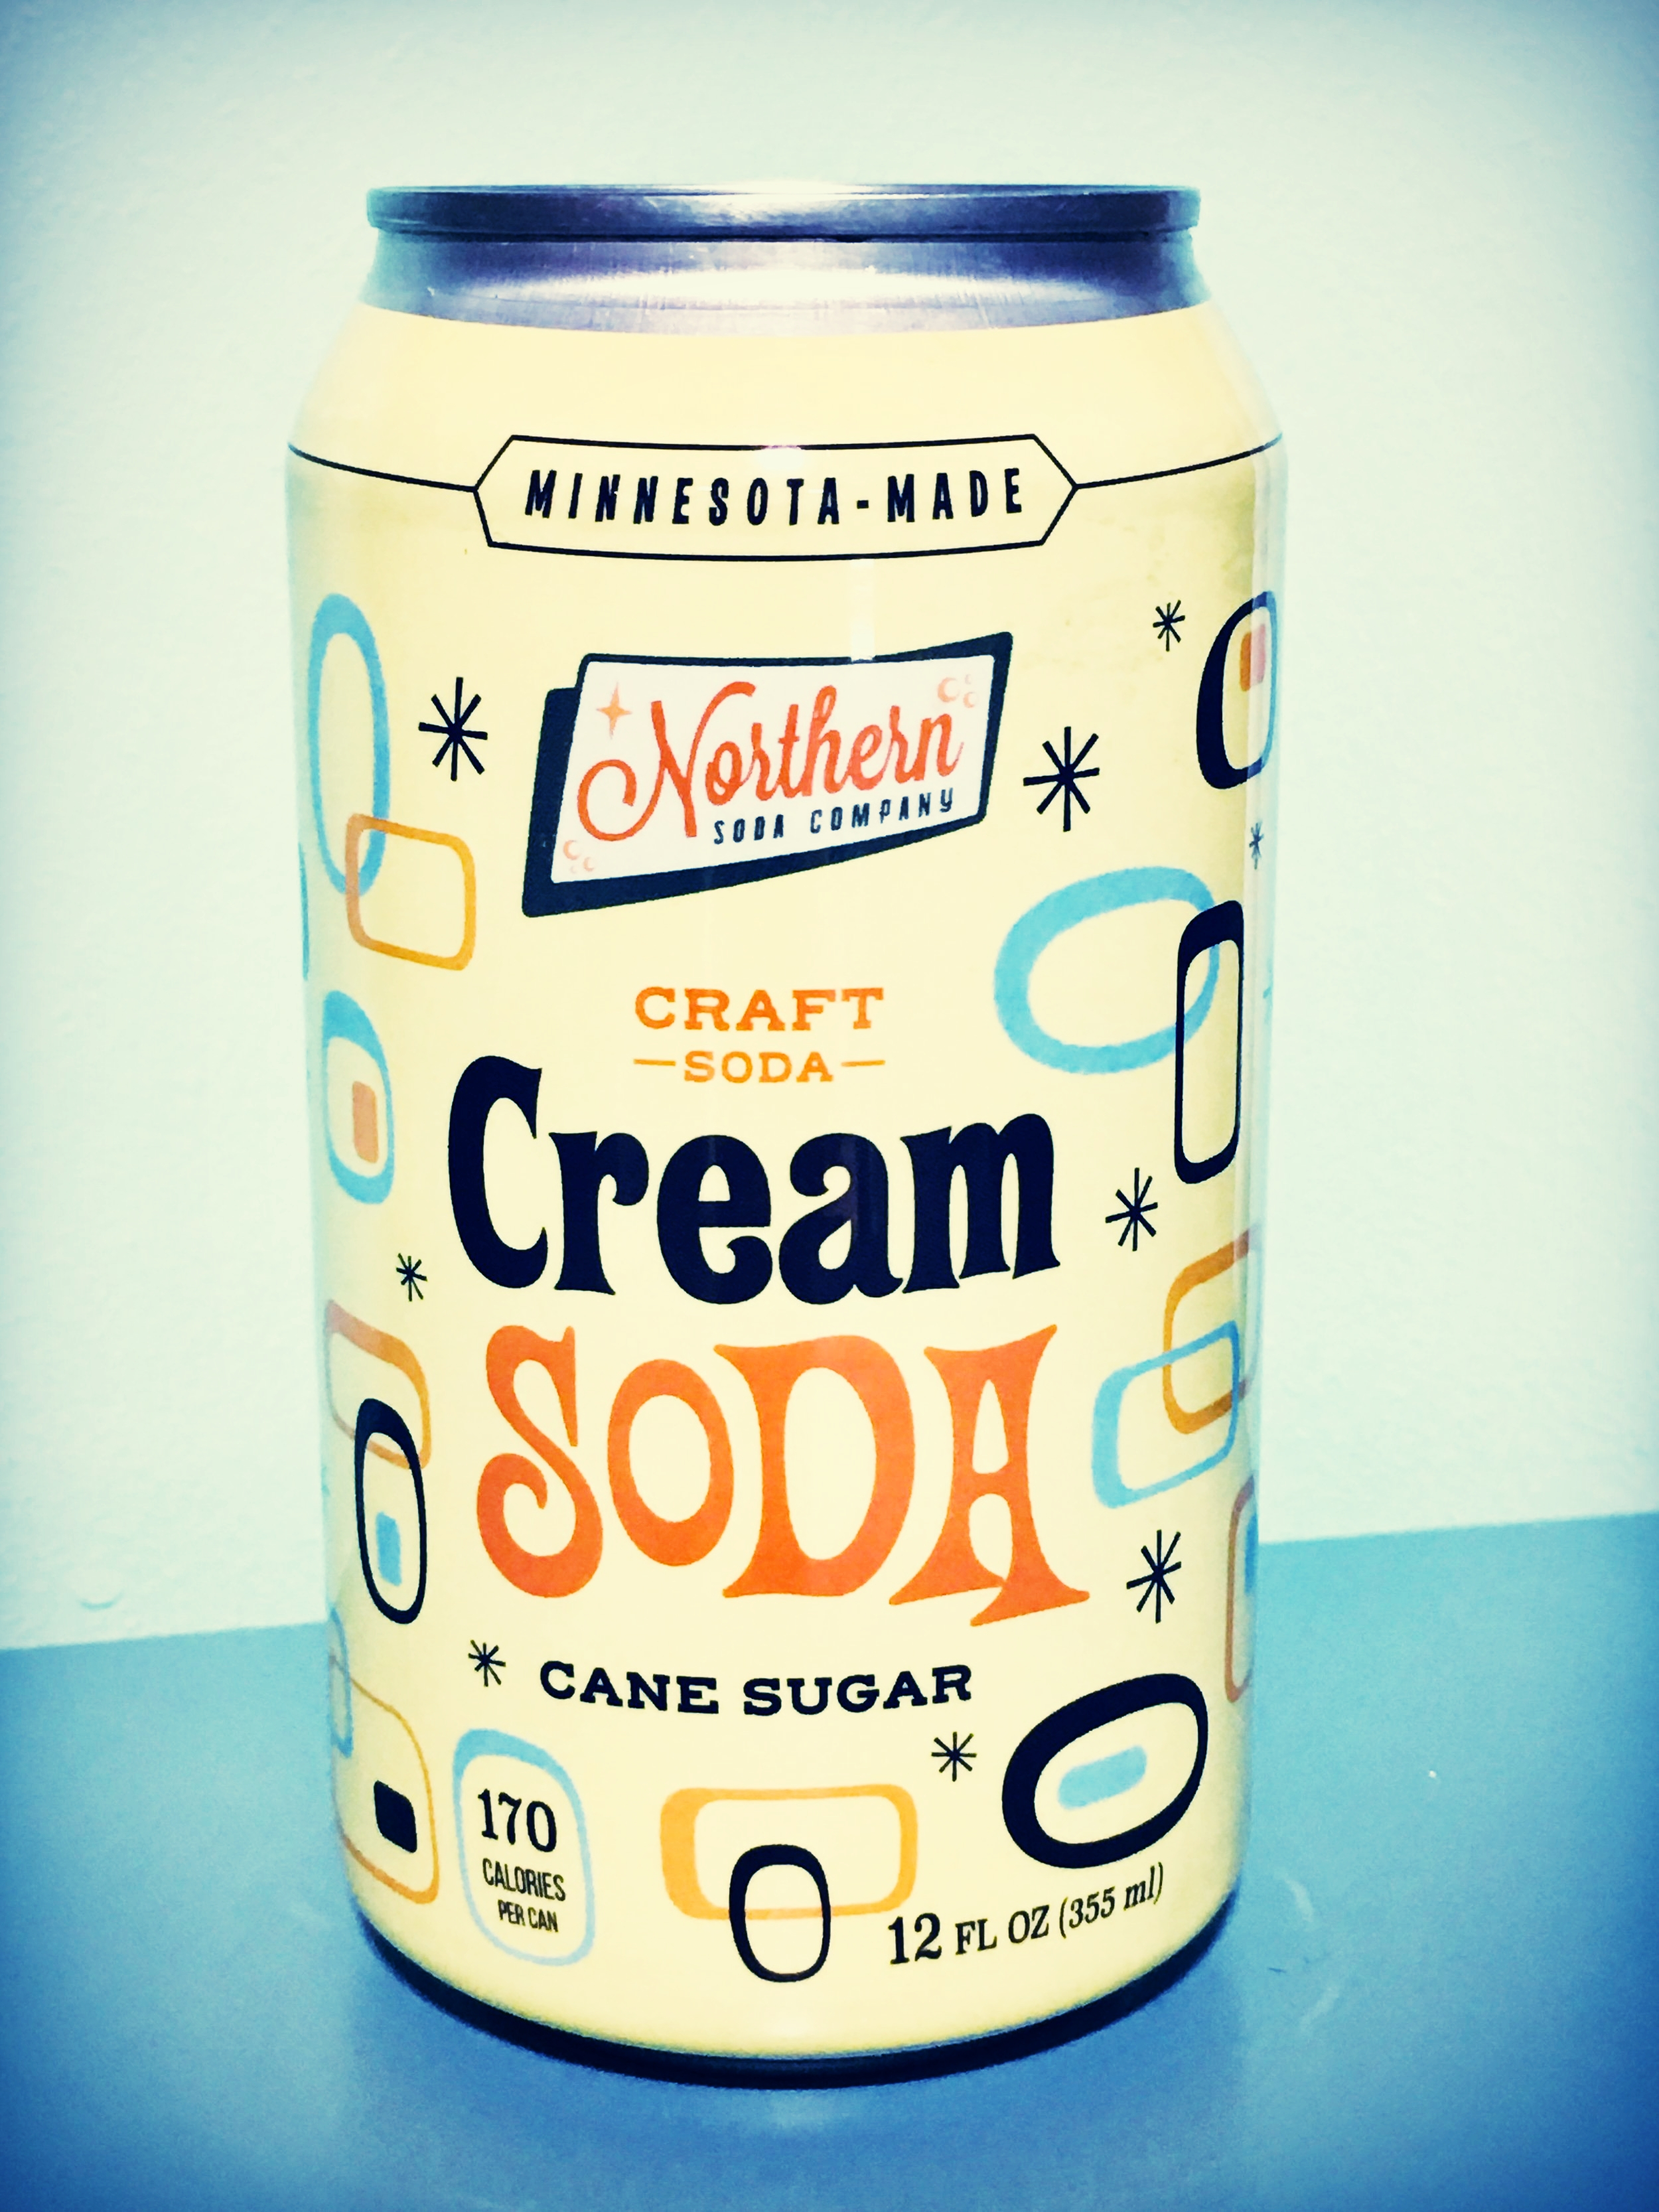 A 12 oz time machine! One sip transports you back to the days of paper routes, soda fountains, and drive in movies.